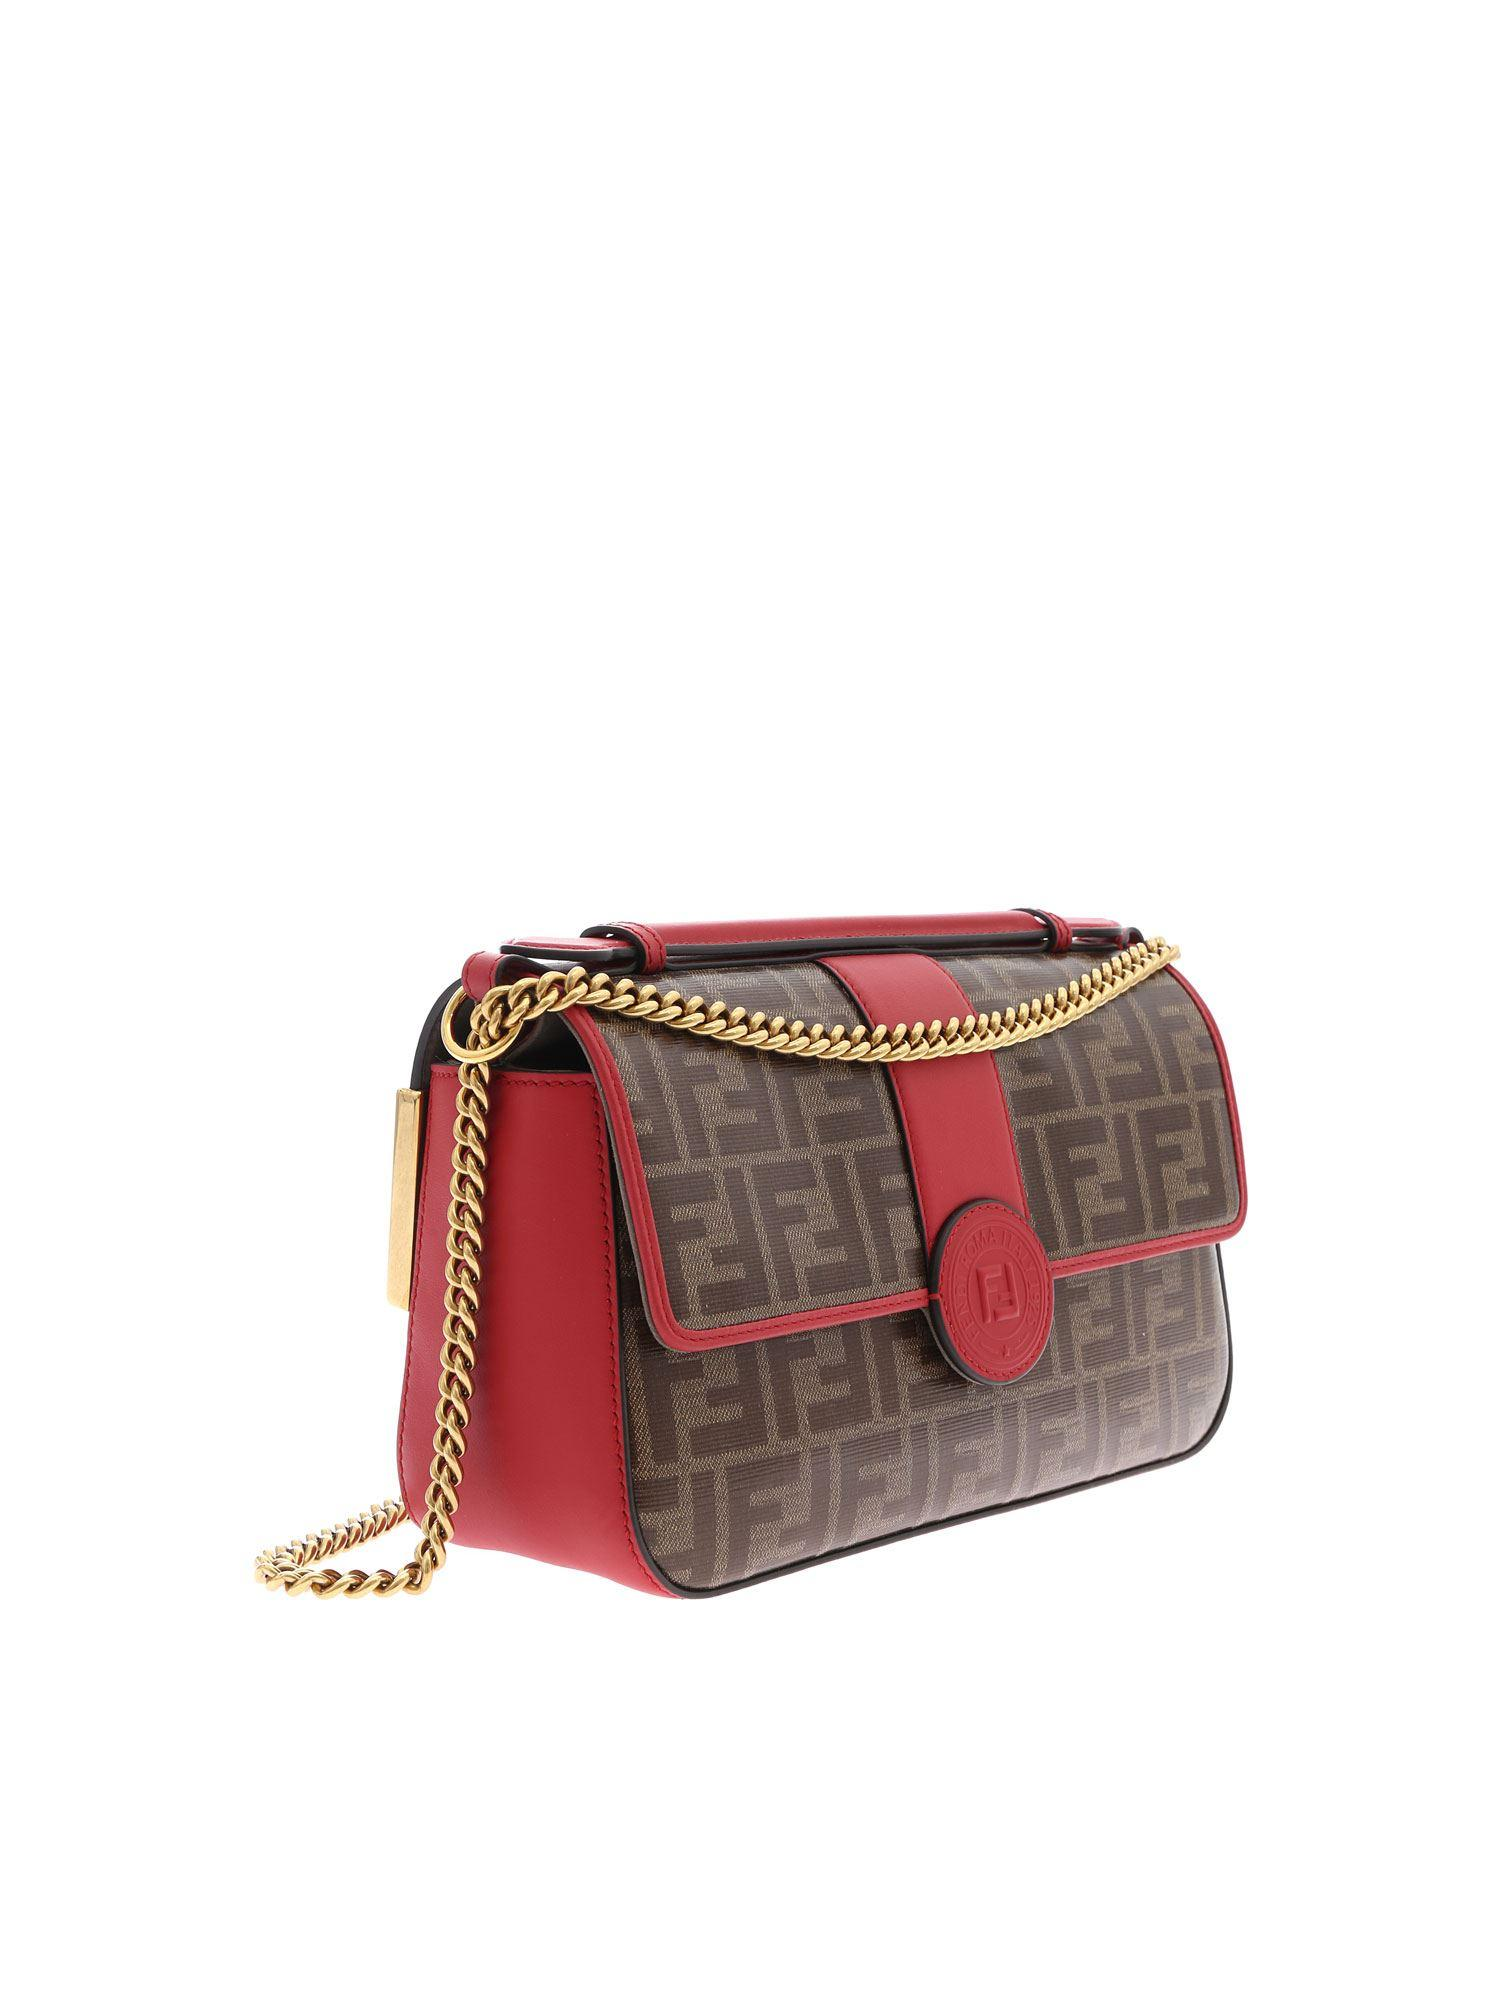 95b2c7ab18 Lyst - Fendi Double Ff Baguette Leather Shoulder Bag in Red - Save 15%